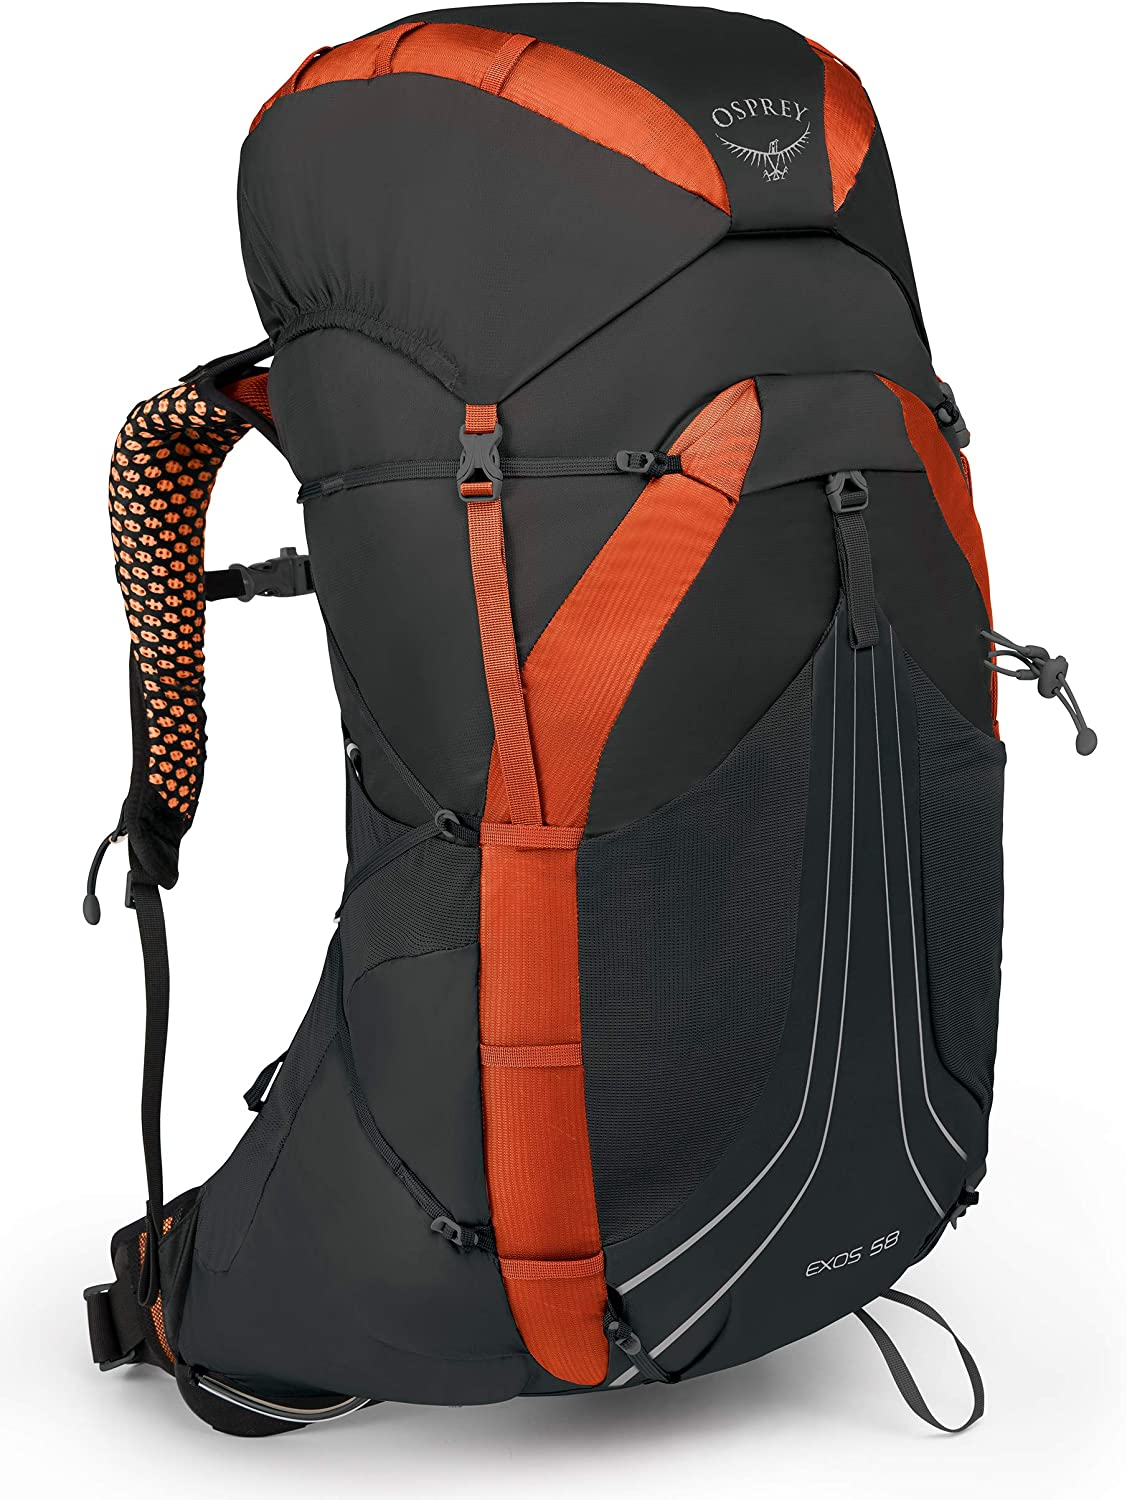 This is an image of the Osprey Exos 58 backpacking backpack in black and orange color on a white background, buckle straps and zippers are seen.